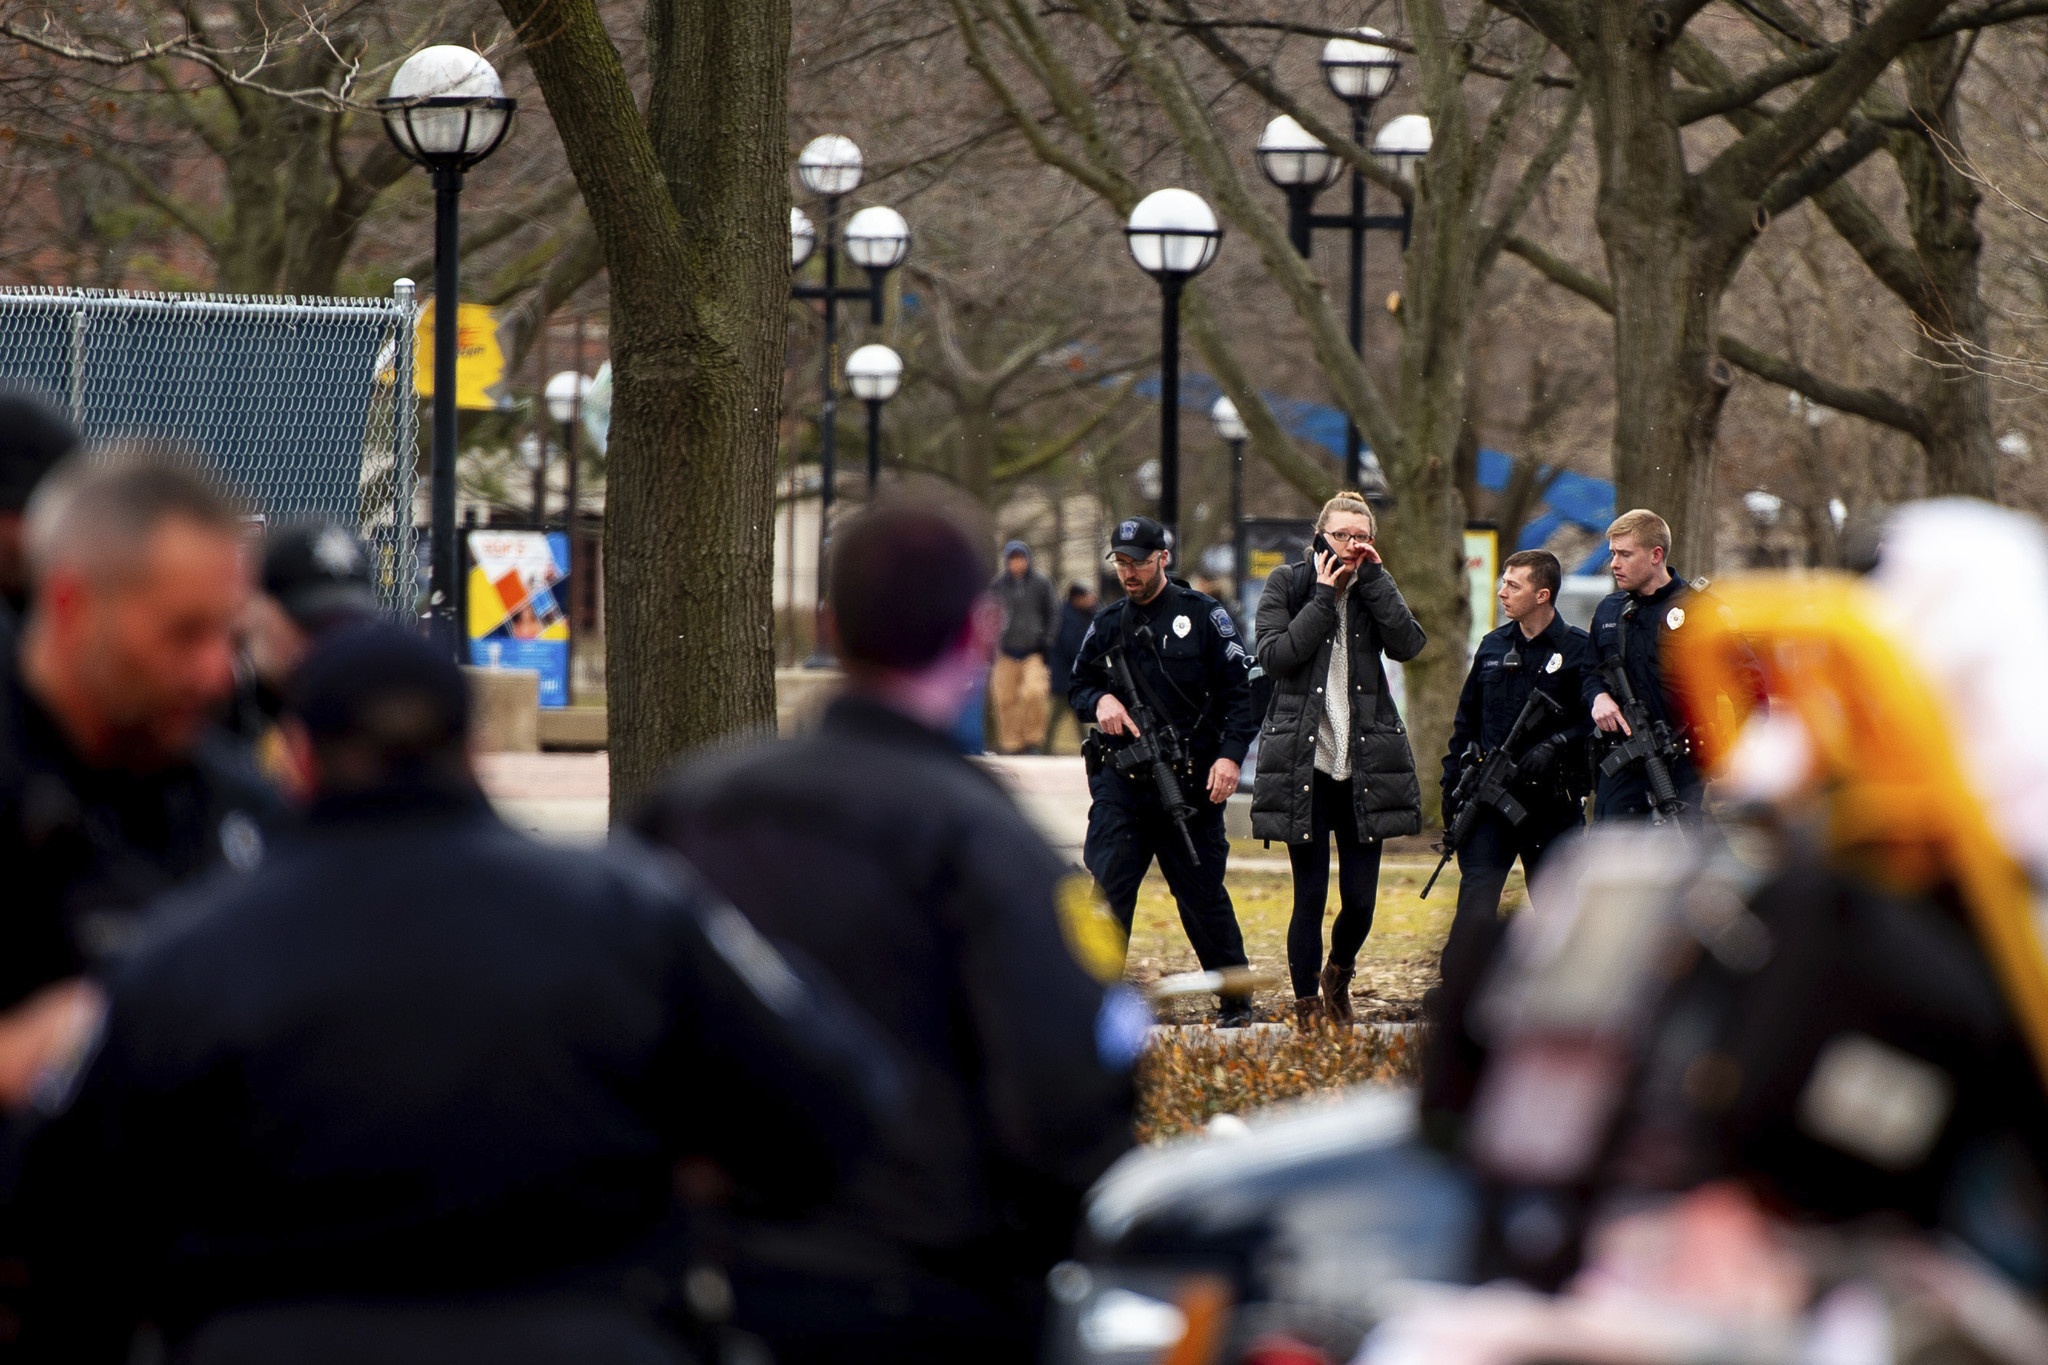 False shooting alerts, like the one at University of Michigan, can create real terror